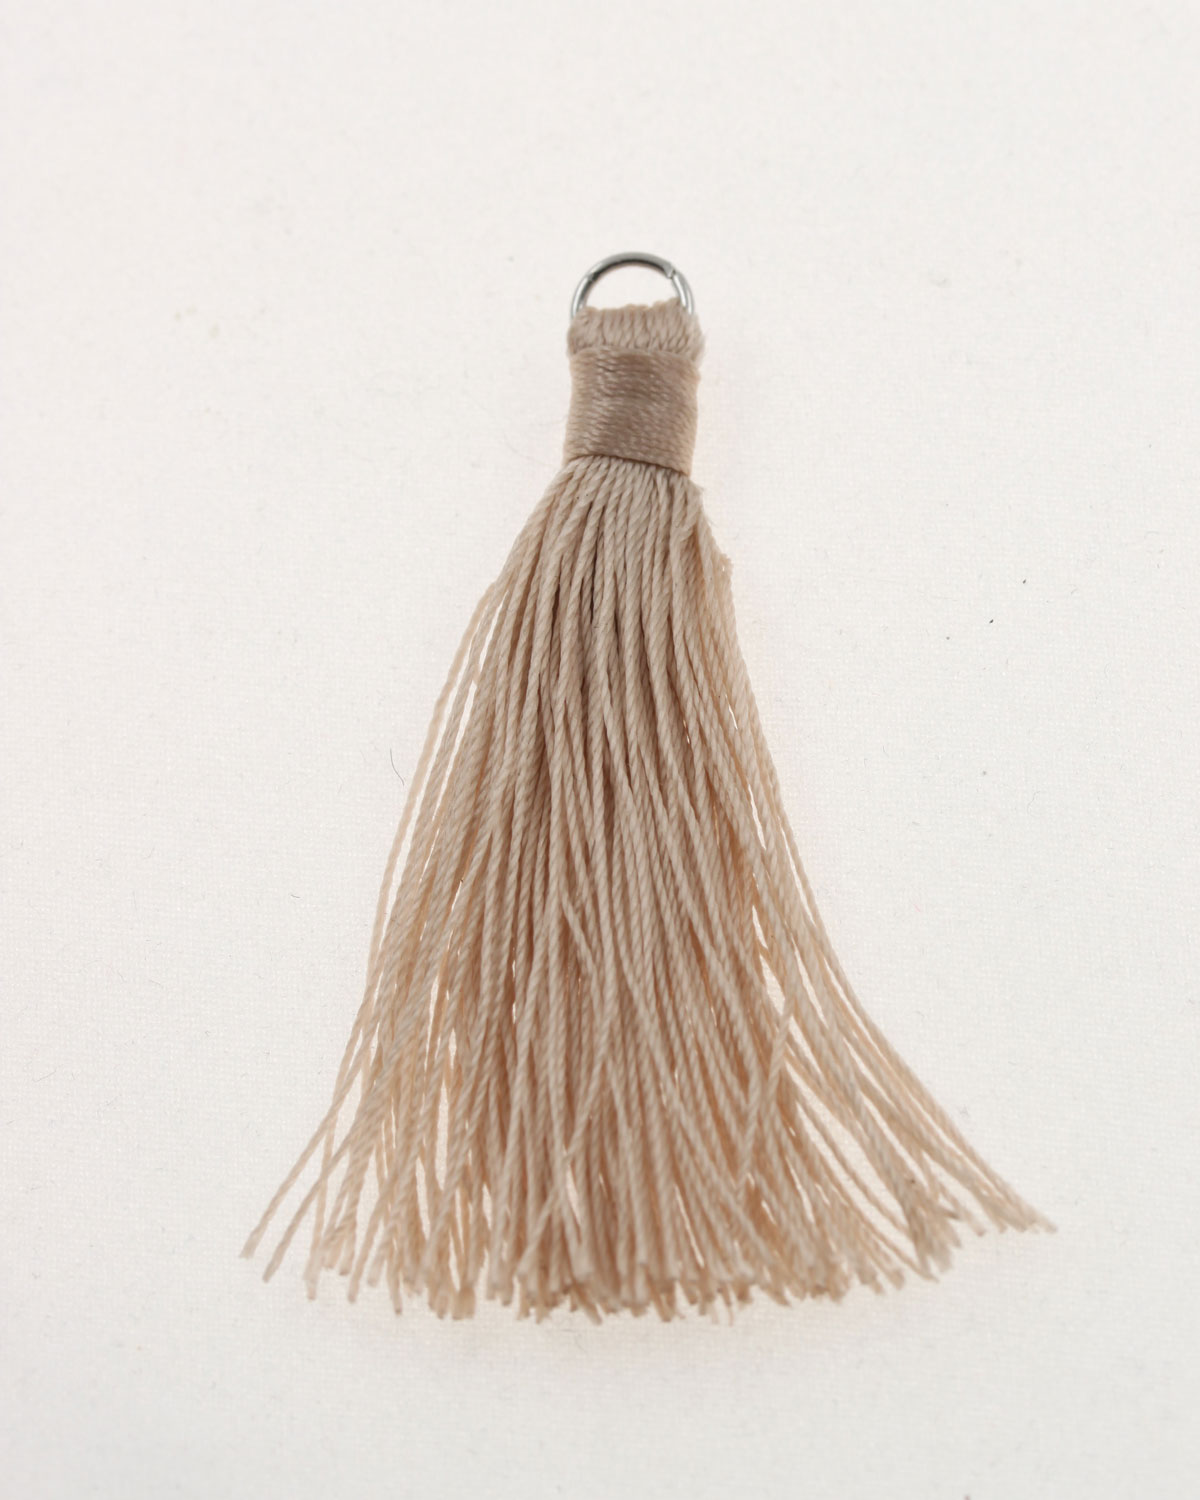 cotton tassels with metal ring